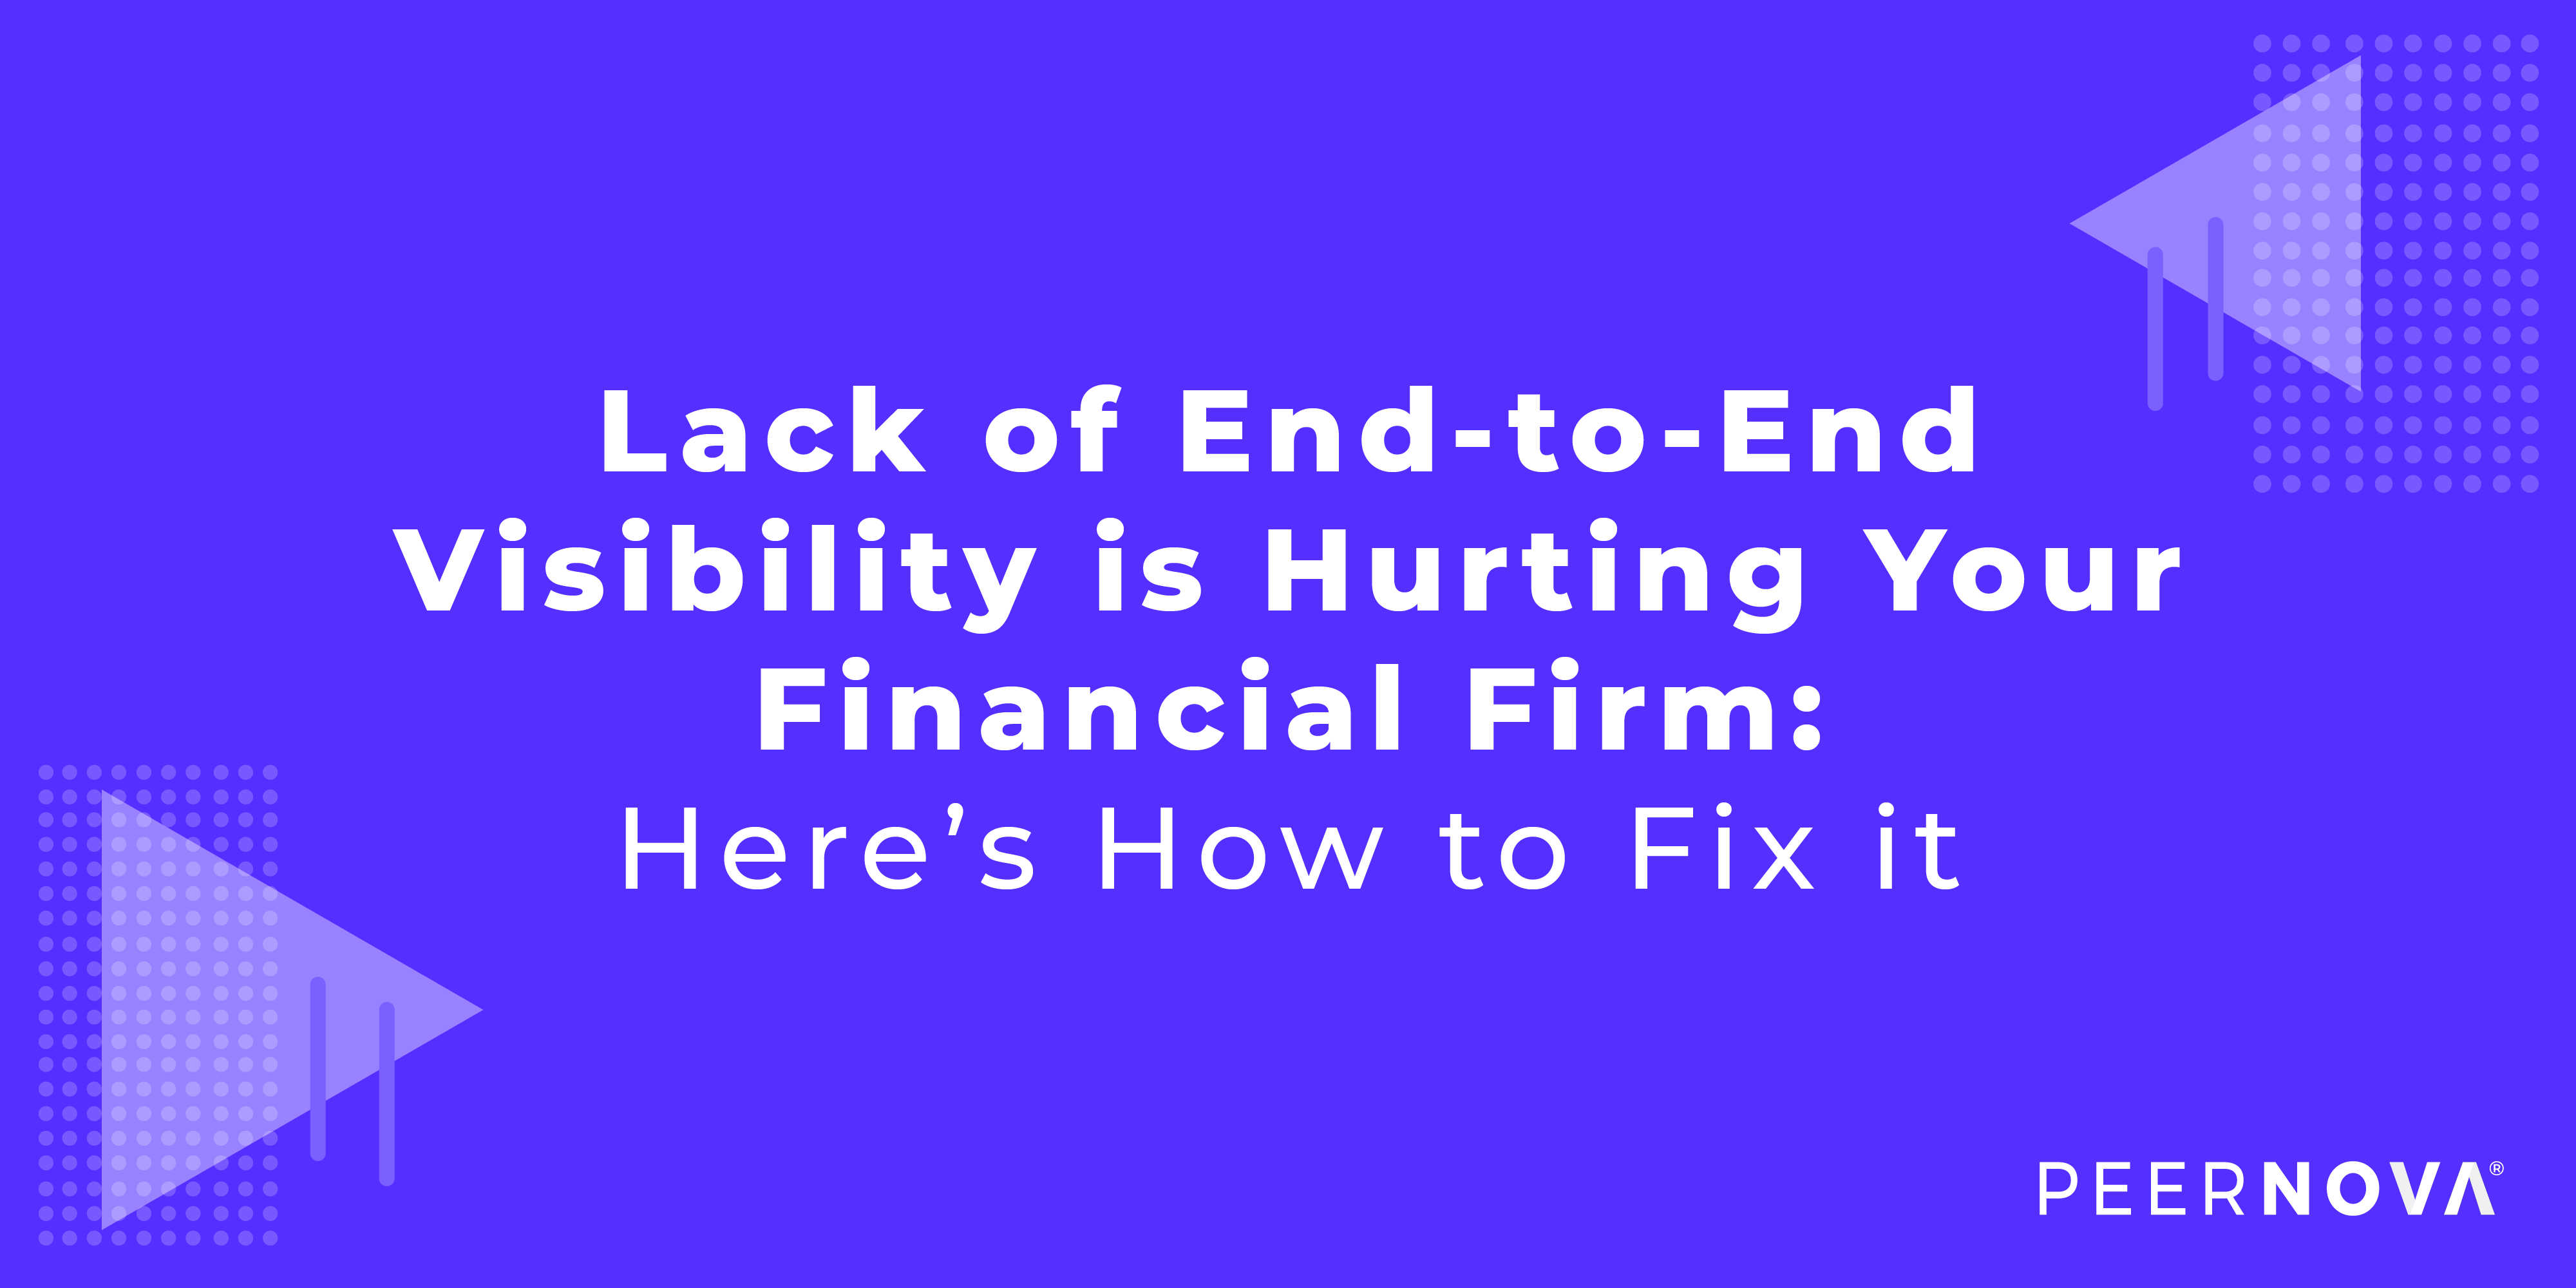 Lack of End-to-End Visibility is Hurt Your Financial Firms